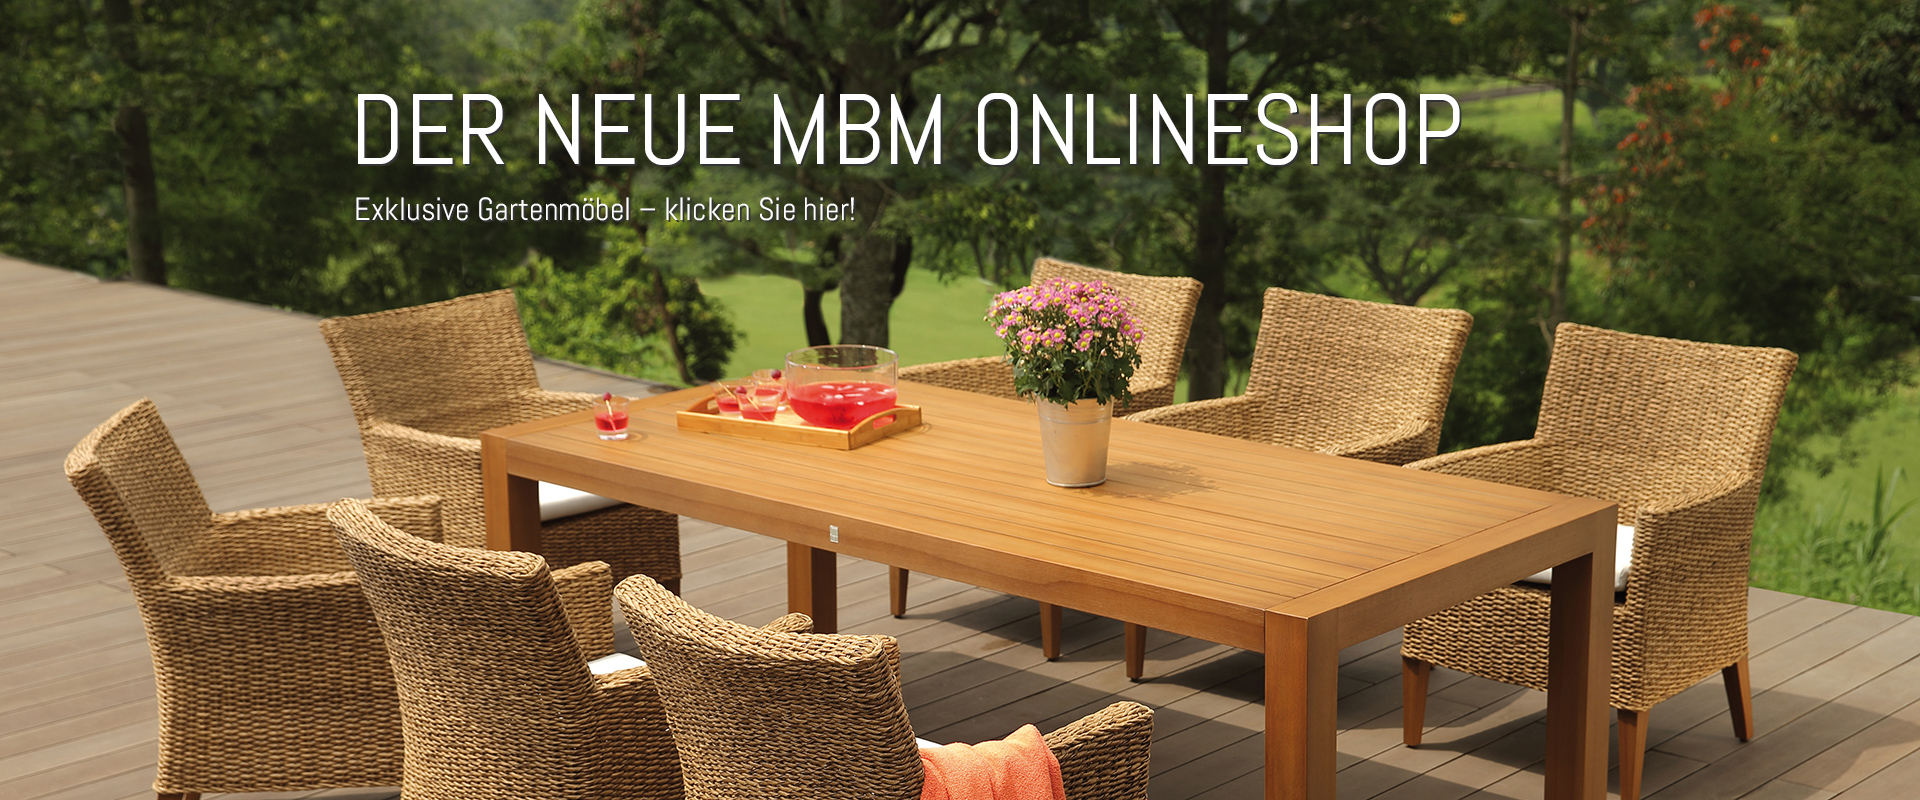 mbm hochwertige gartenm bel onlineshop m nchner boulevard m bel. Black Bedroom Furniture Sets. Home Design Ideas